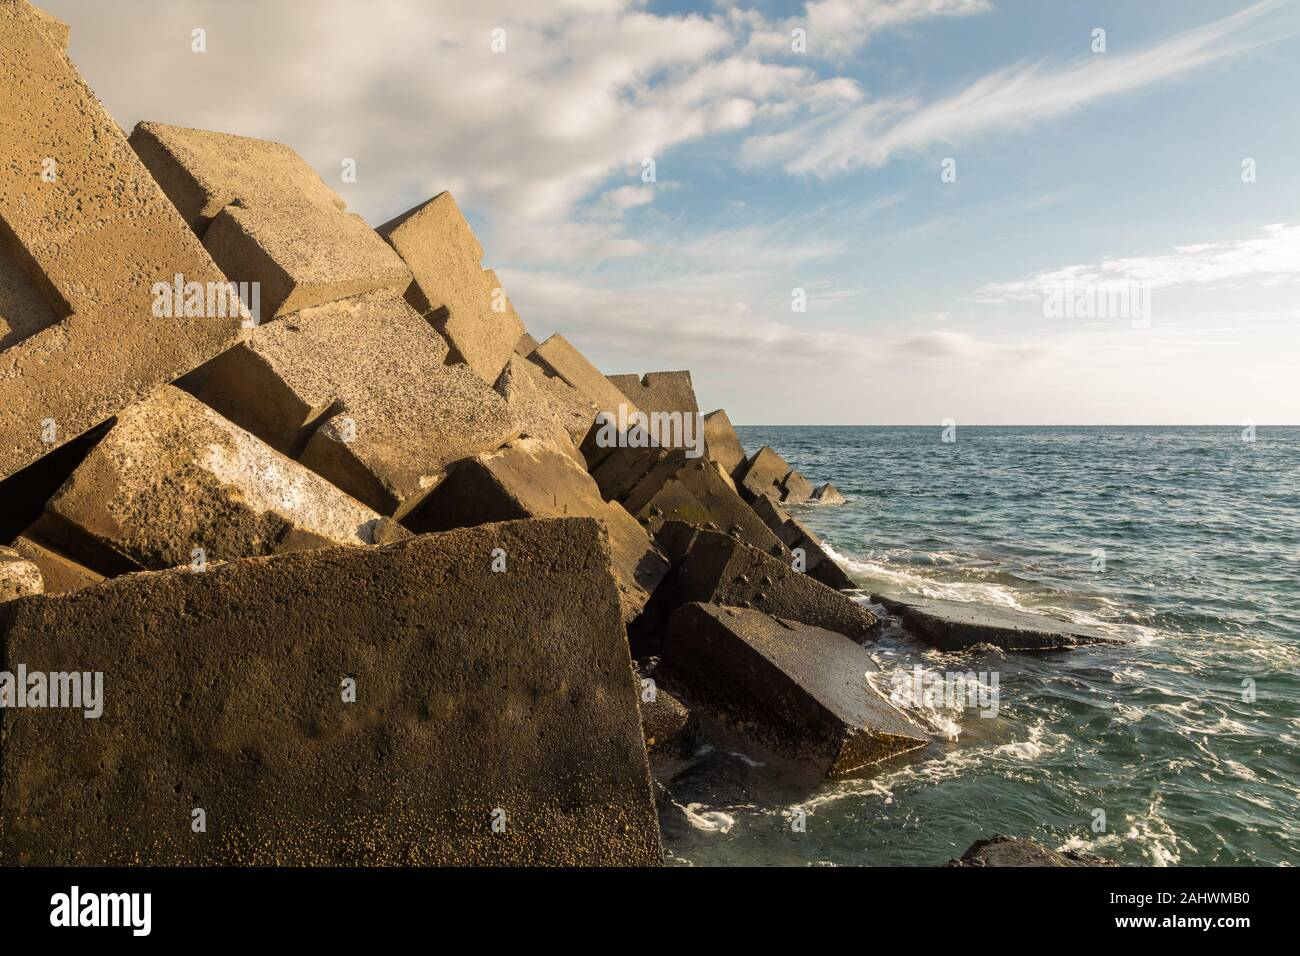 Breakwater blocks in the port of Puerto Rico, Gran Canaria, with the Atlantic Ocean in the background Stock Photo